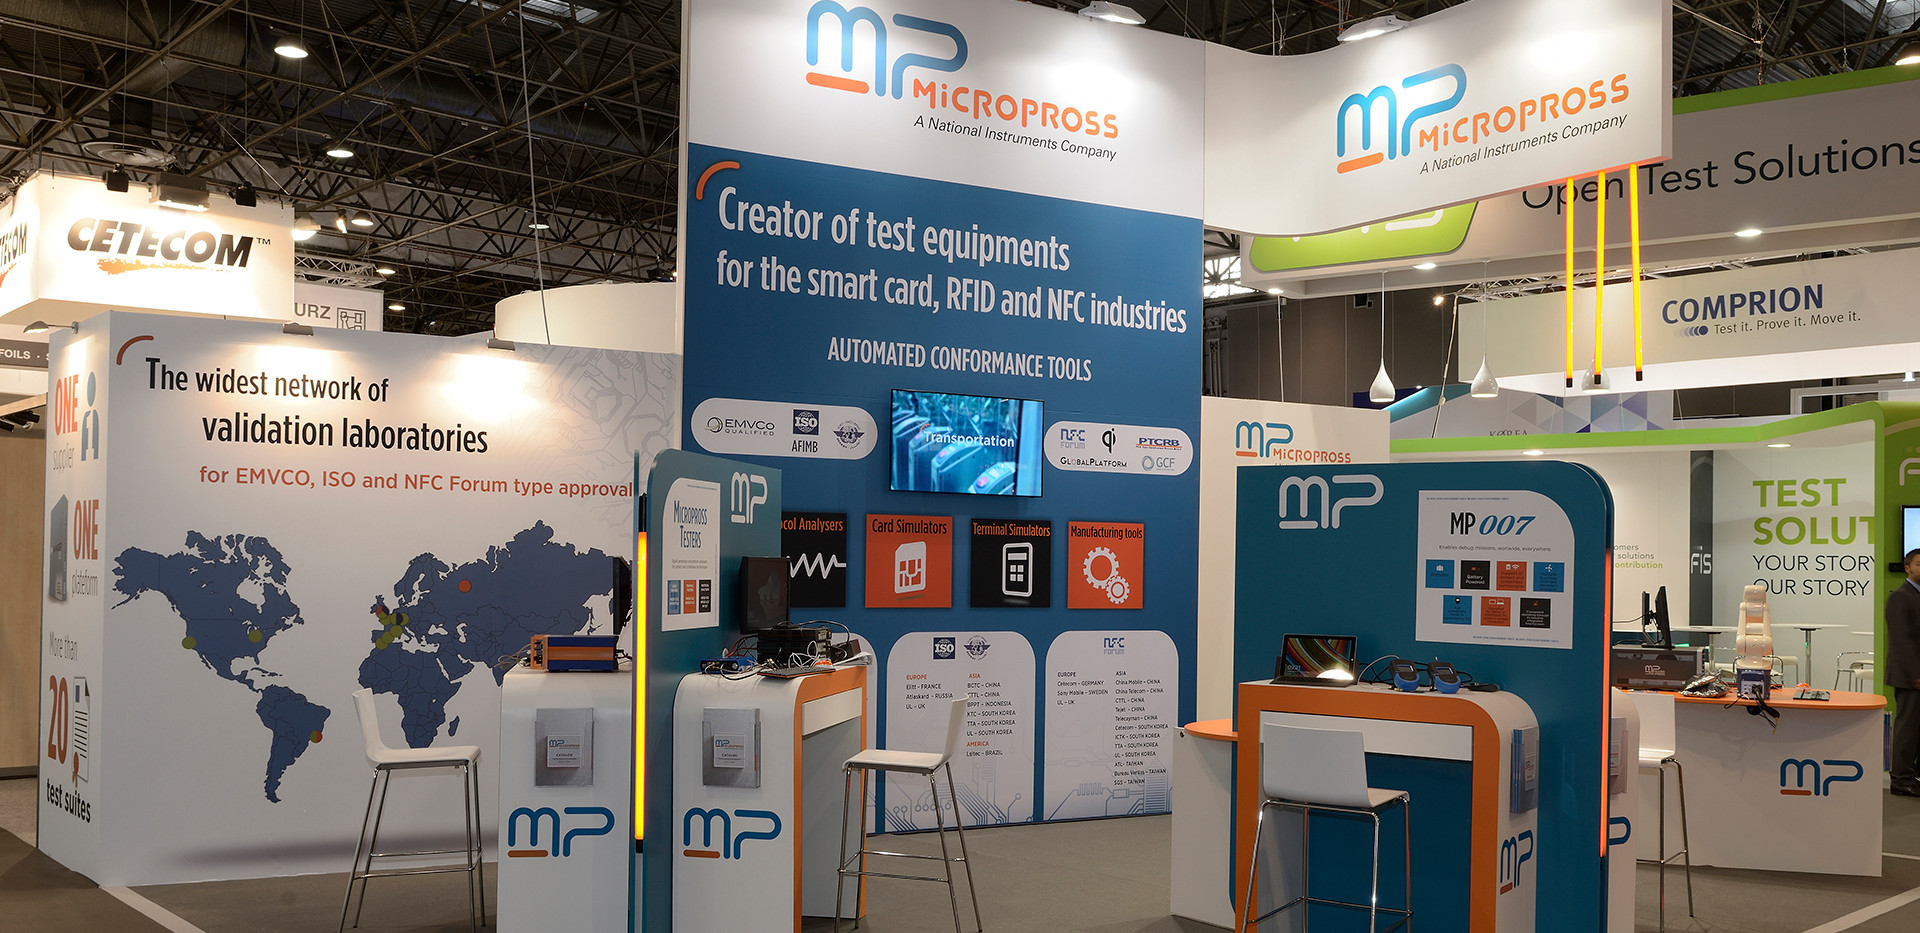 STAND MICROPROCESS